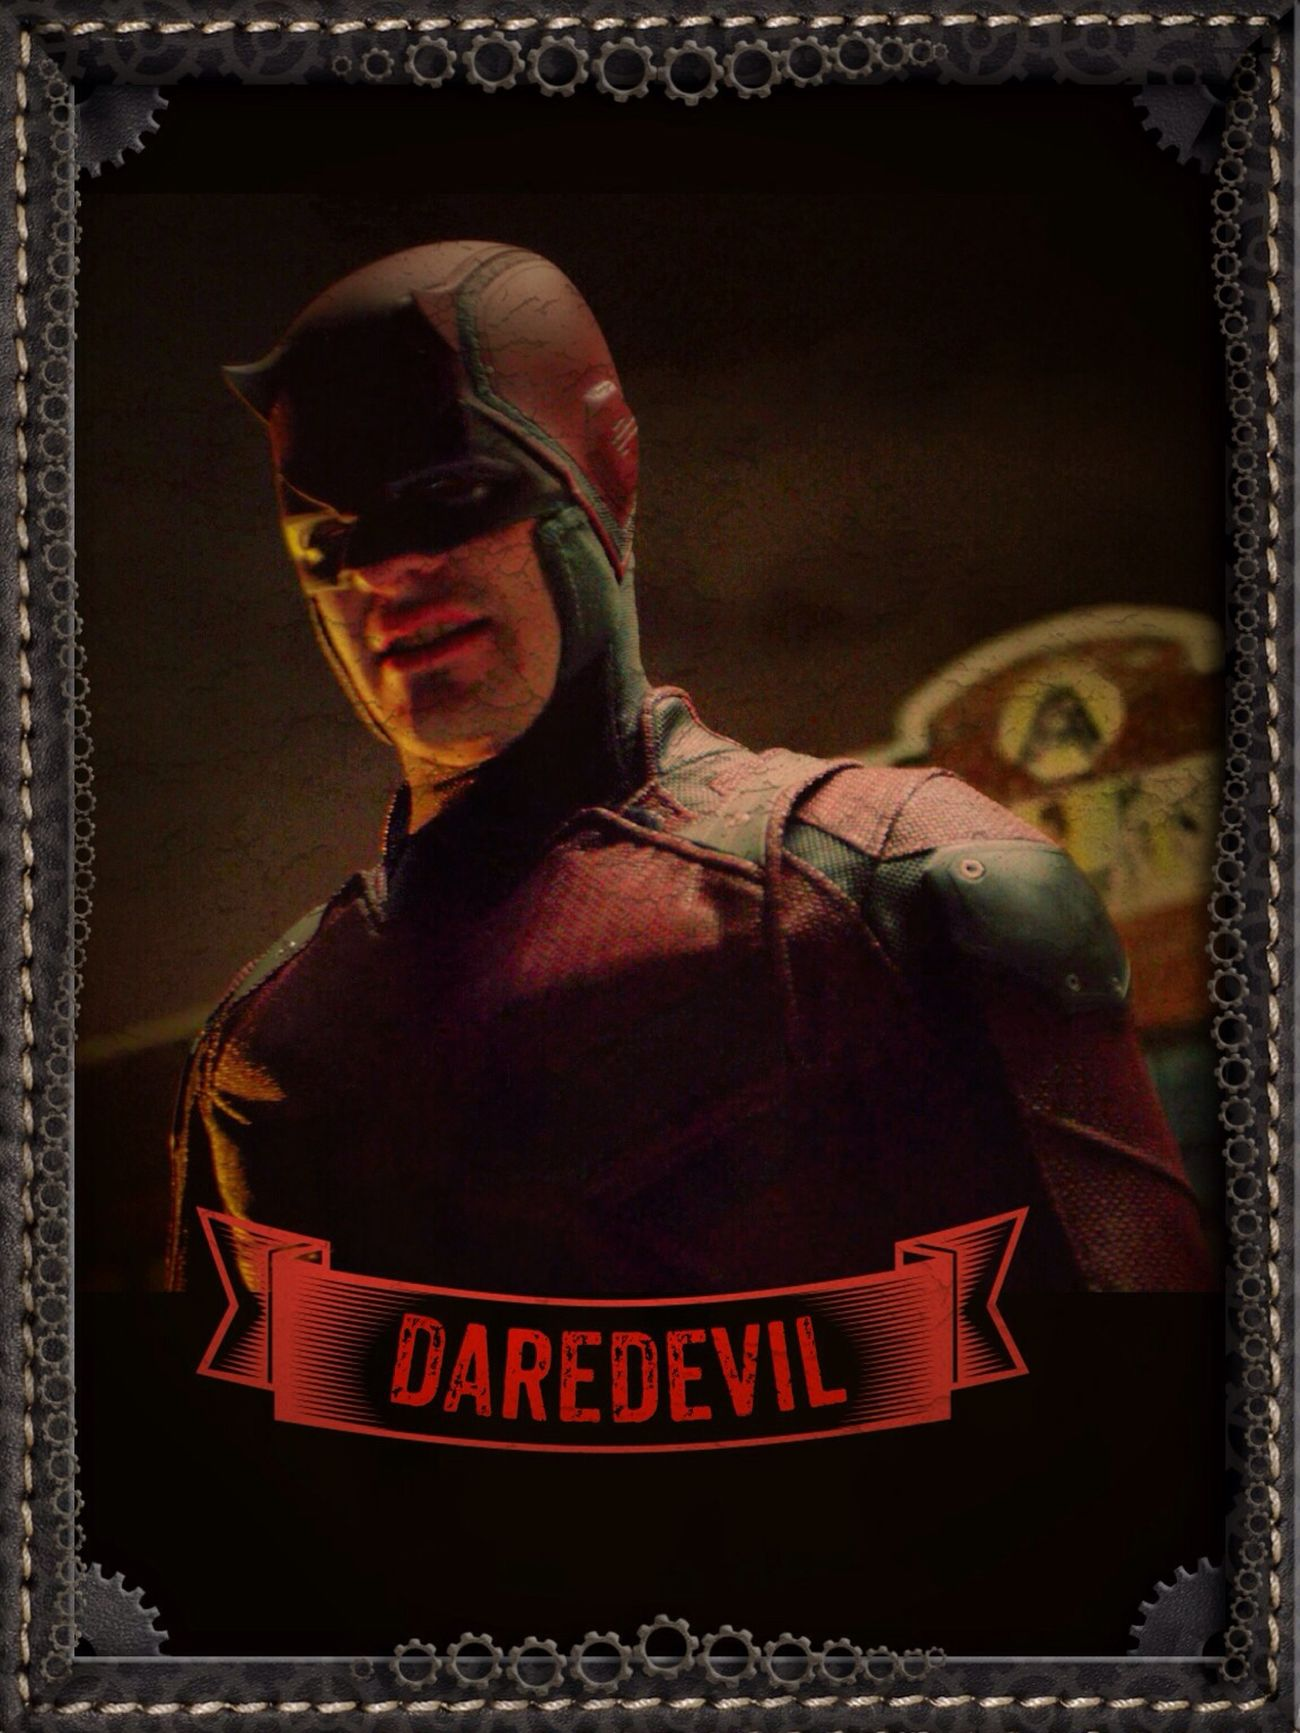 Daredevil #marvel #marvelcomics #netflix #stanlee #comics #marvelcomic #netflixnight #comikaze #cosplay #netflixtime #daredevil #marvelcomicsgang #stanleescomikaze #marveluniverse #comic #art #marvelheroes #superhero #marvelnation #love #netflixing #wilso Netflix